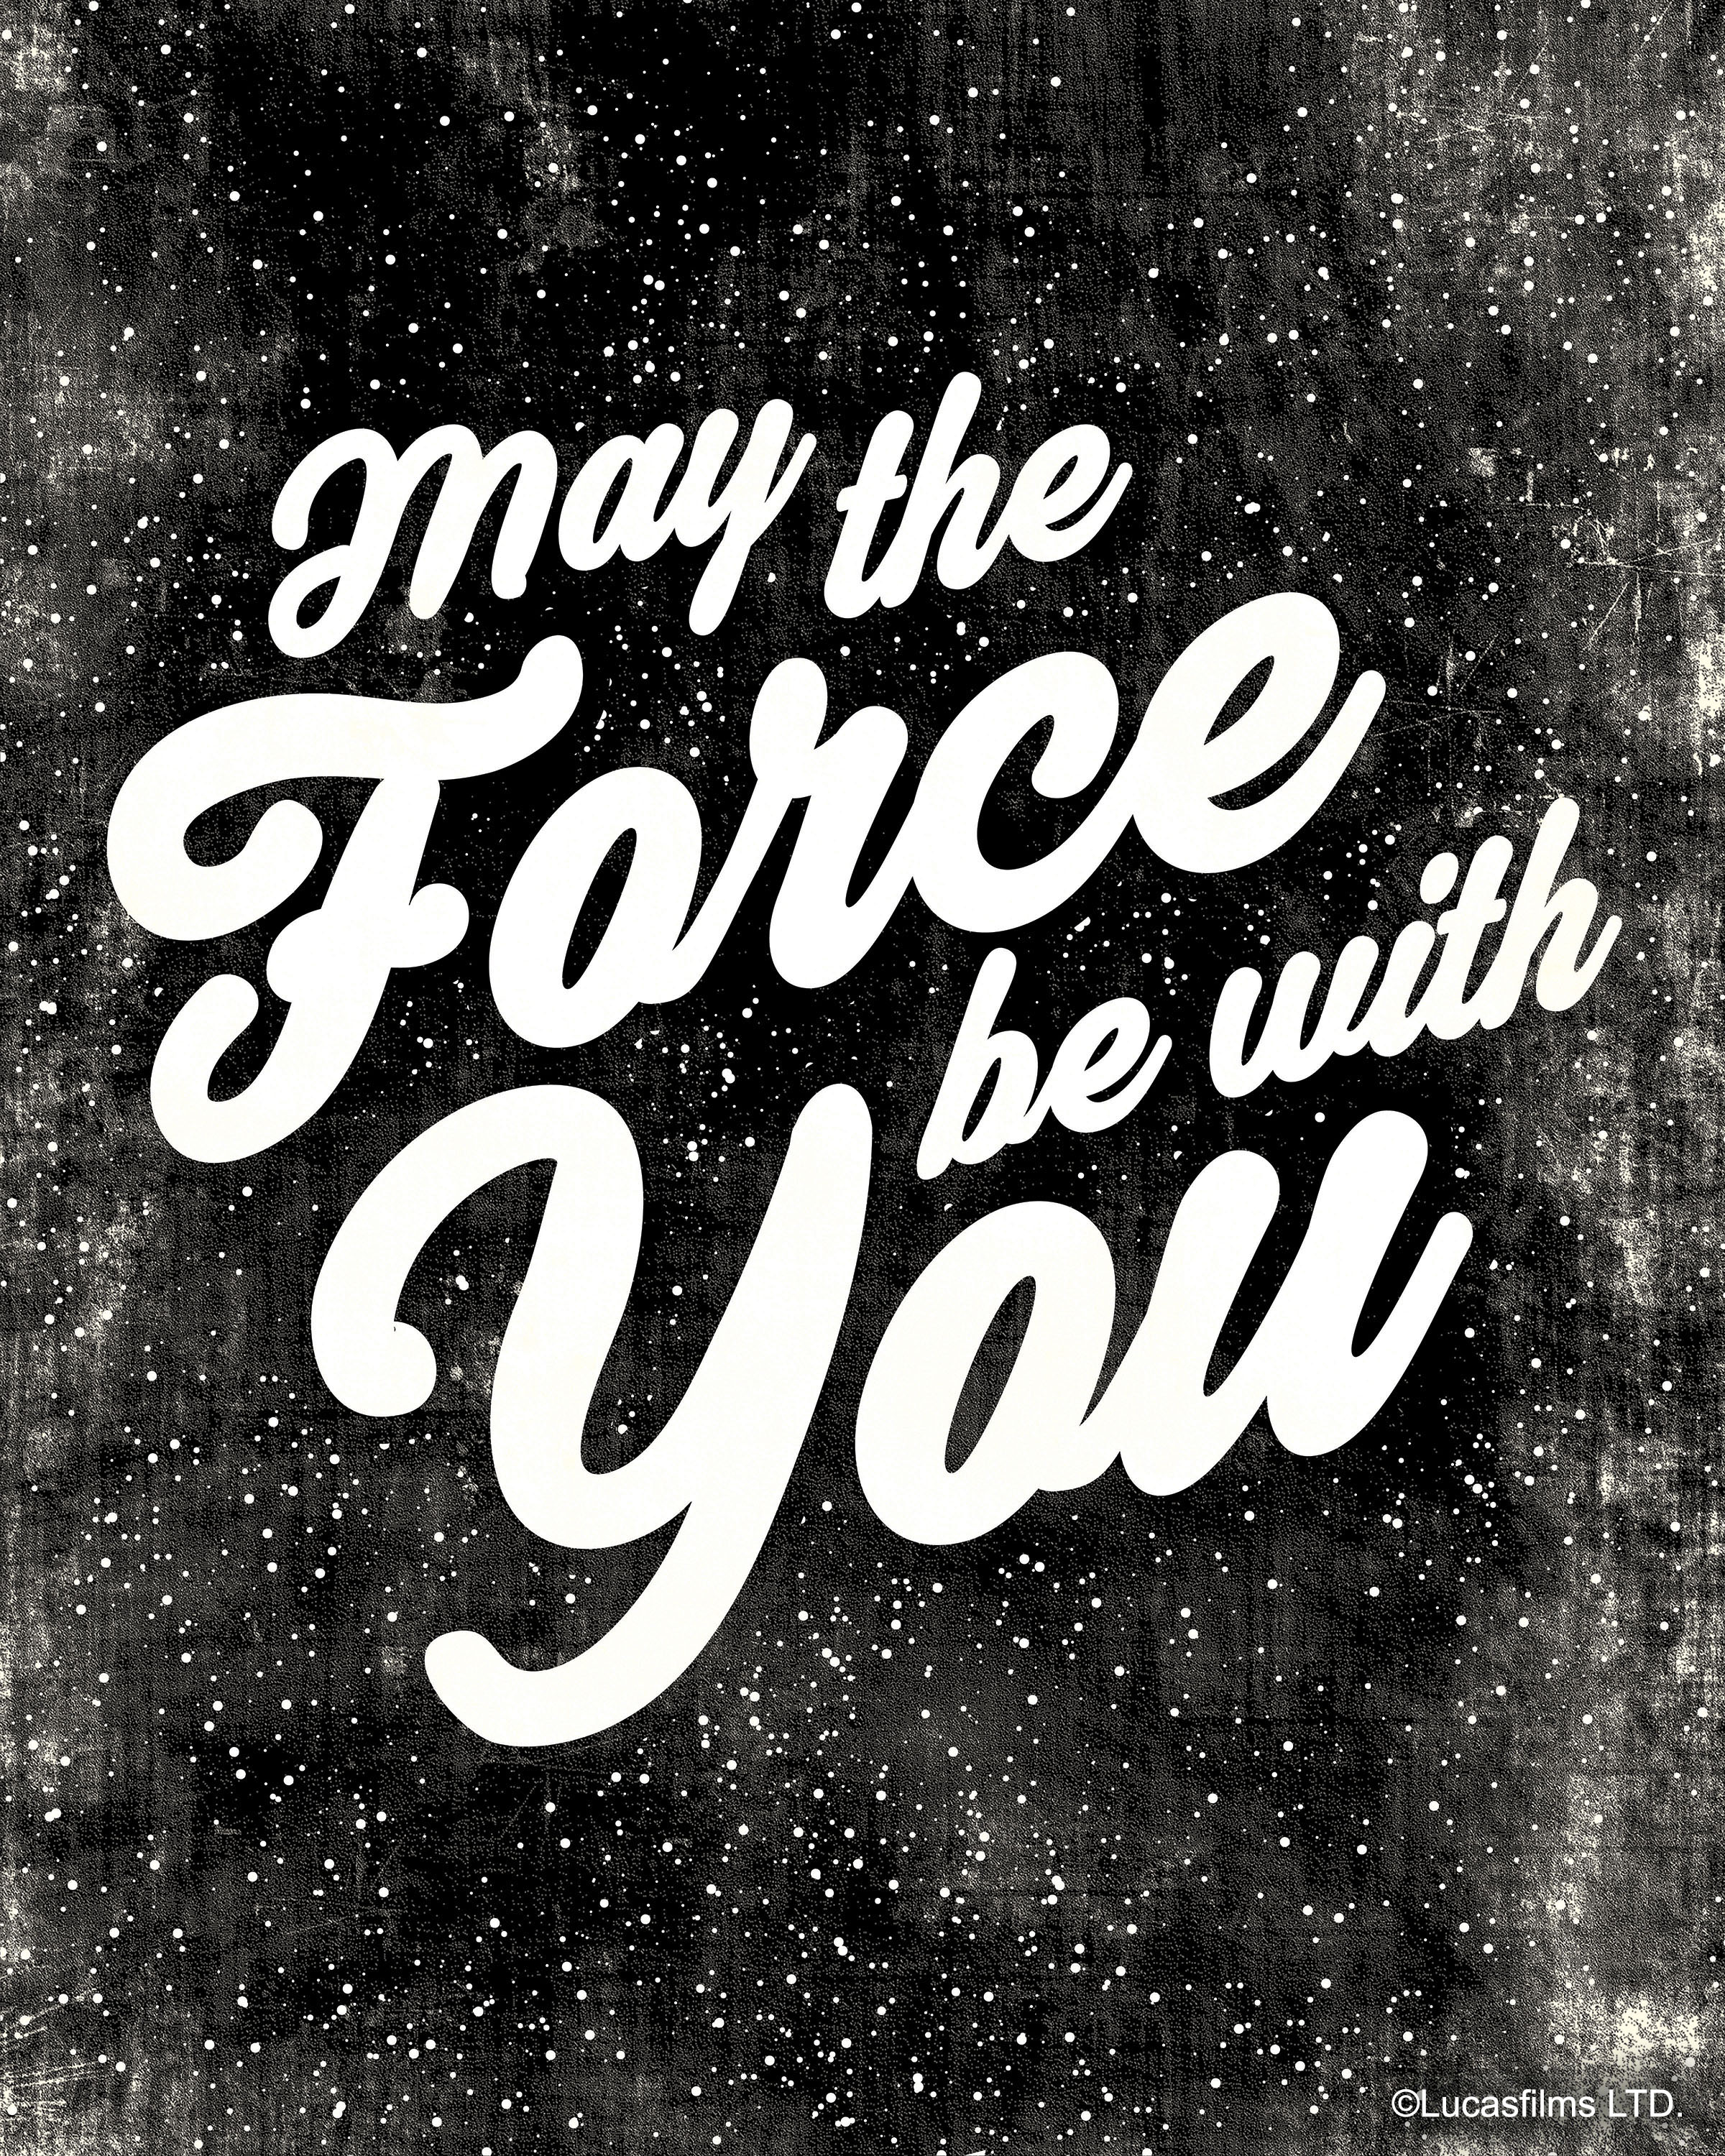 """may the force be with you"" - Star Wars typography for wall decor. ©Lucasfilms LTD."